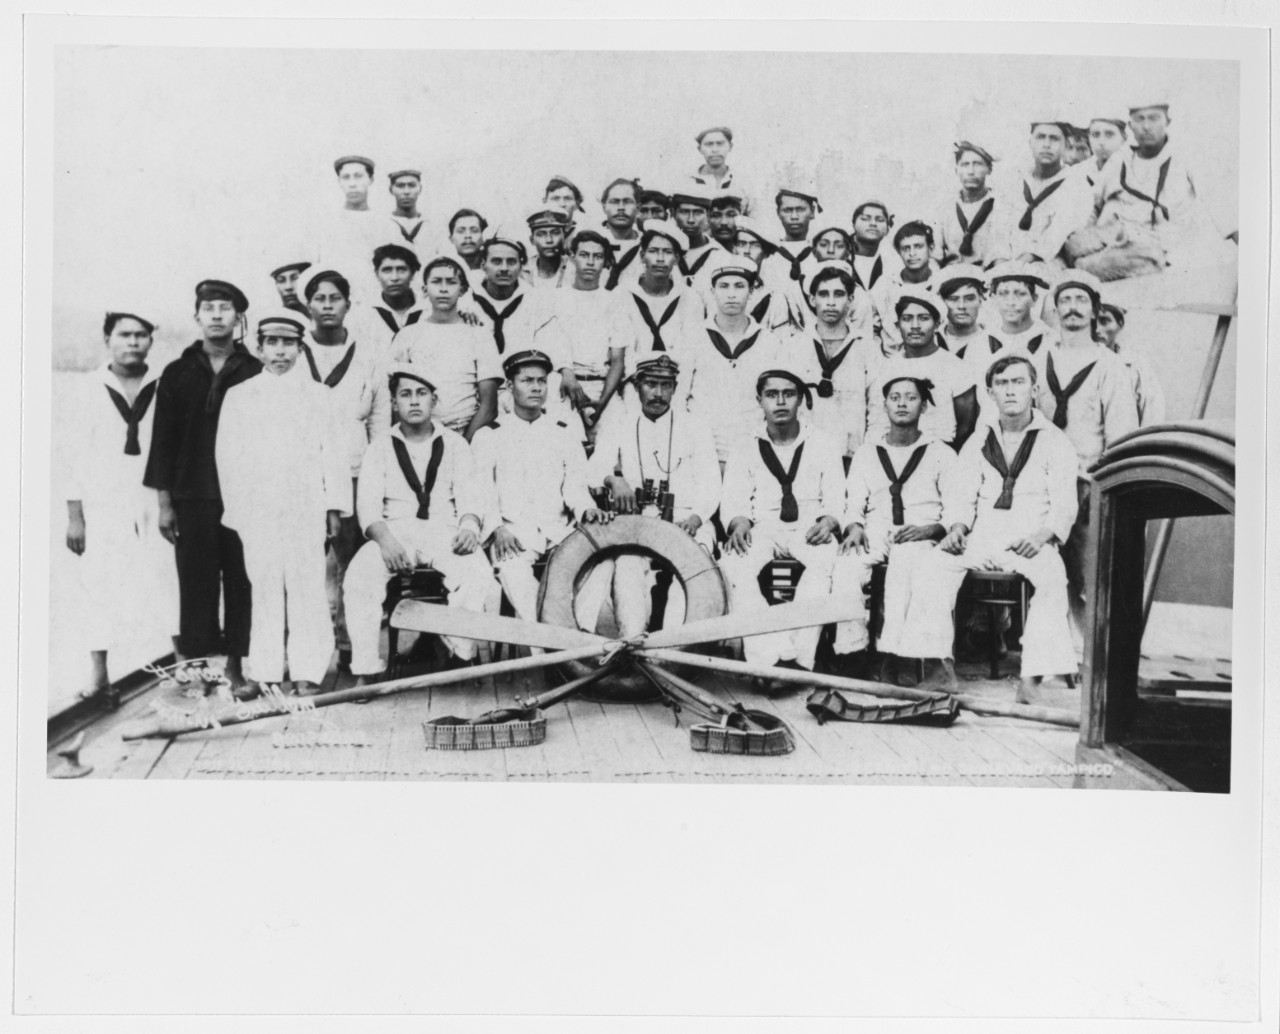 Officers and Crew Members of the Mexican Gunboat GENERAL GUERRERO